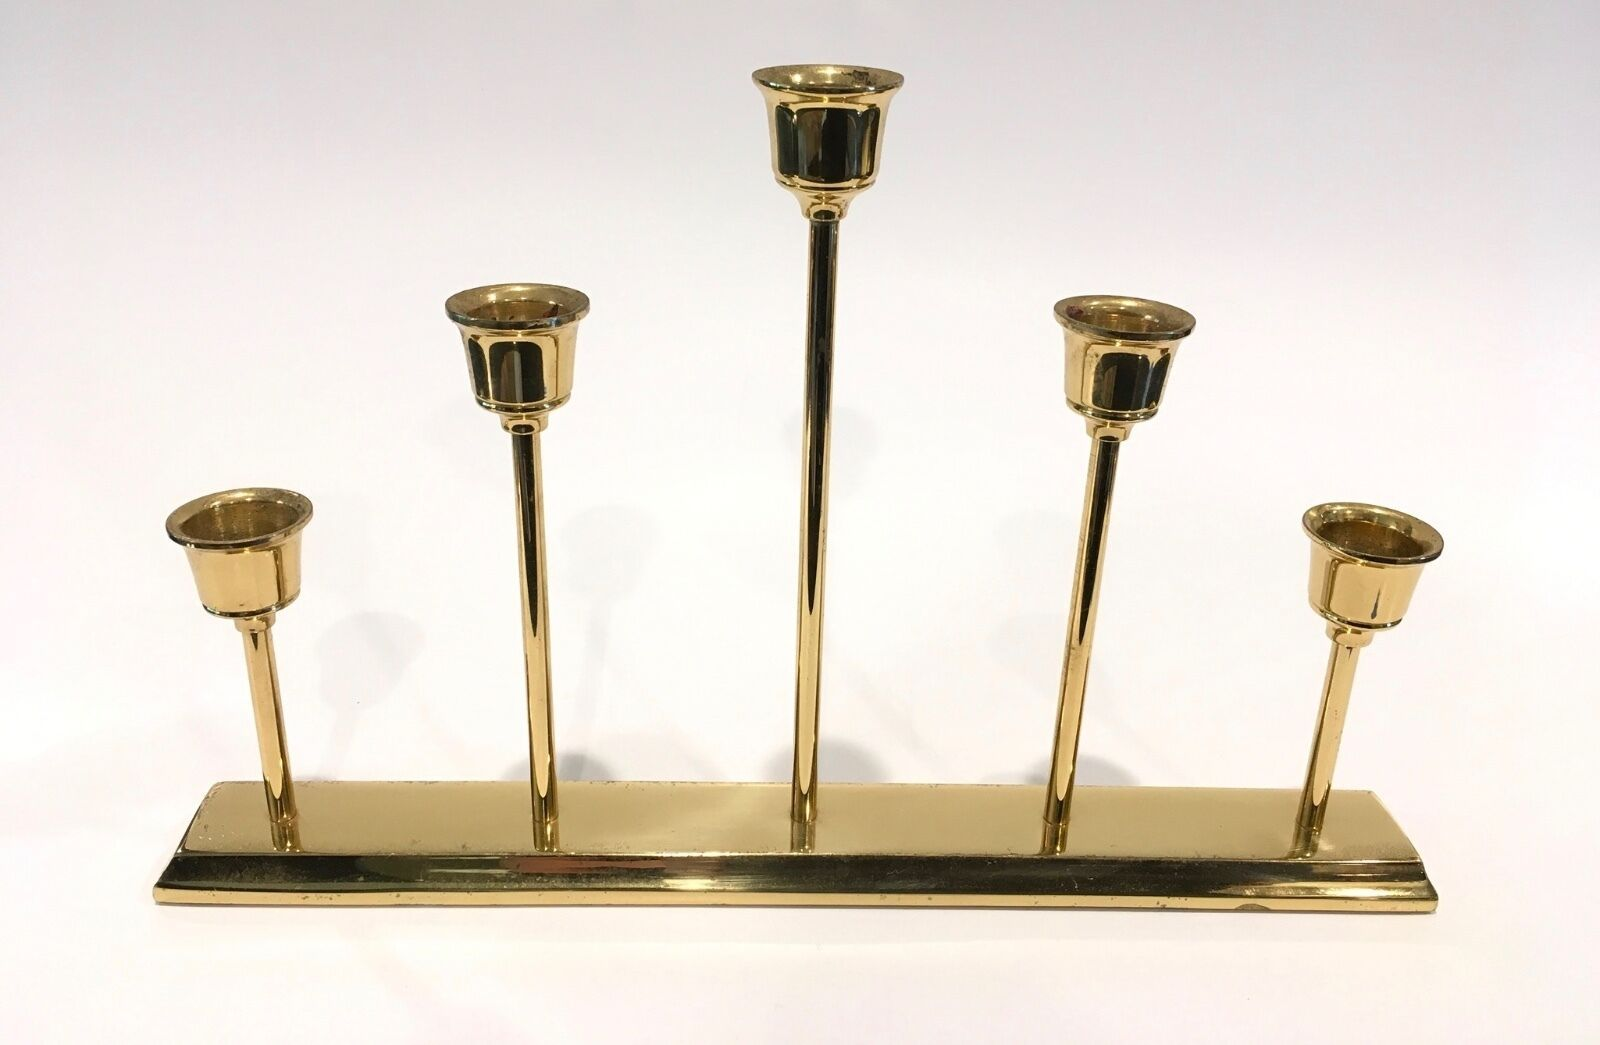 Set of 5 Vintage Graduating Brass Taper Candle Stick Holders Hollywood Regency - $29.99